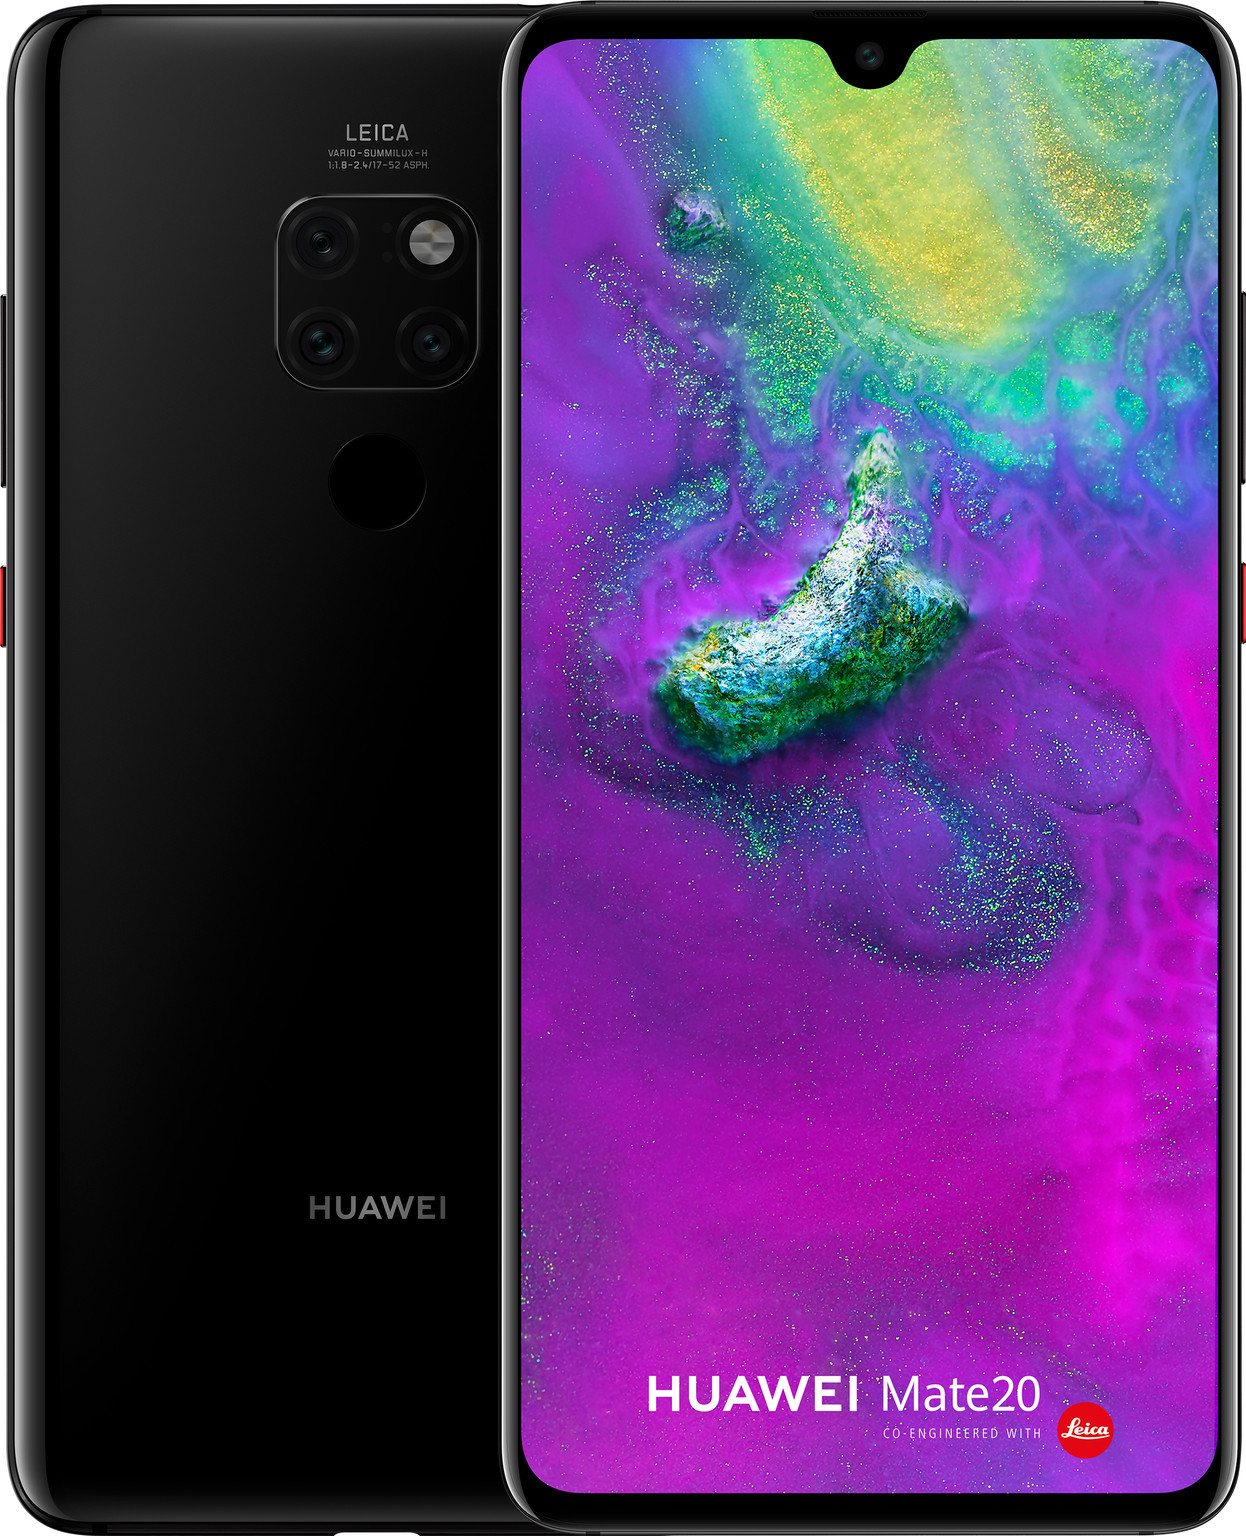 GSM Huawei Mate 20 / 6.53'' IPS LCD / Kirin 980 / Mali-G76 MP10 / Triple Camera / 4000mAh / Android 9.0 / Black